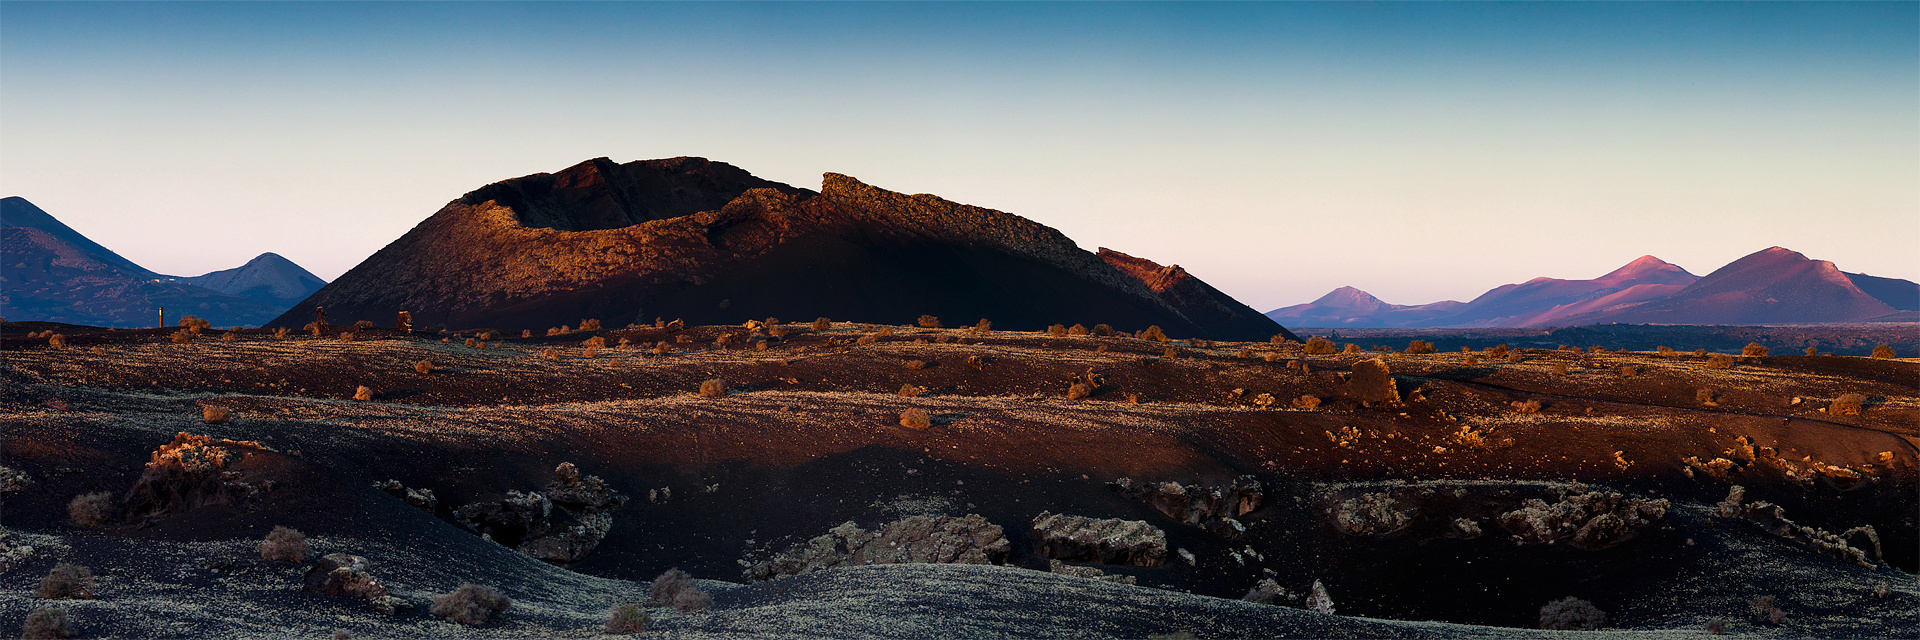 lanzarote-morning-vulcano-3_1_HD.jpg